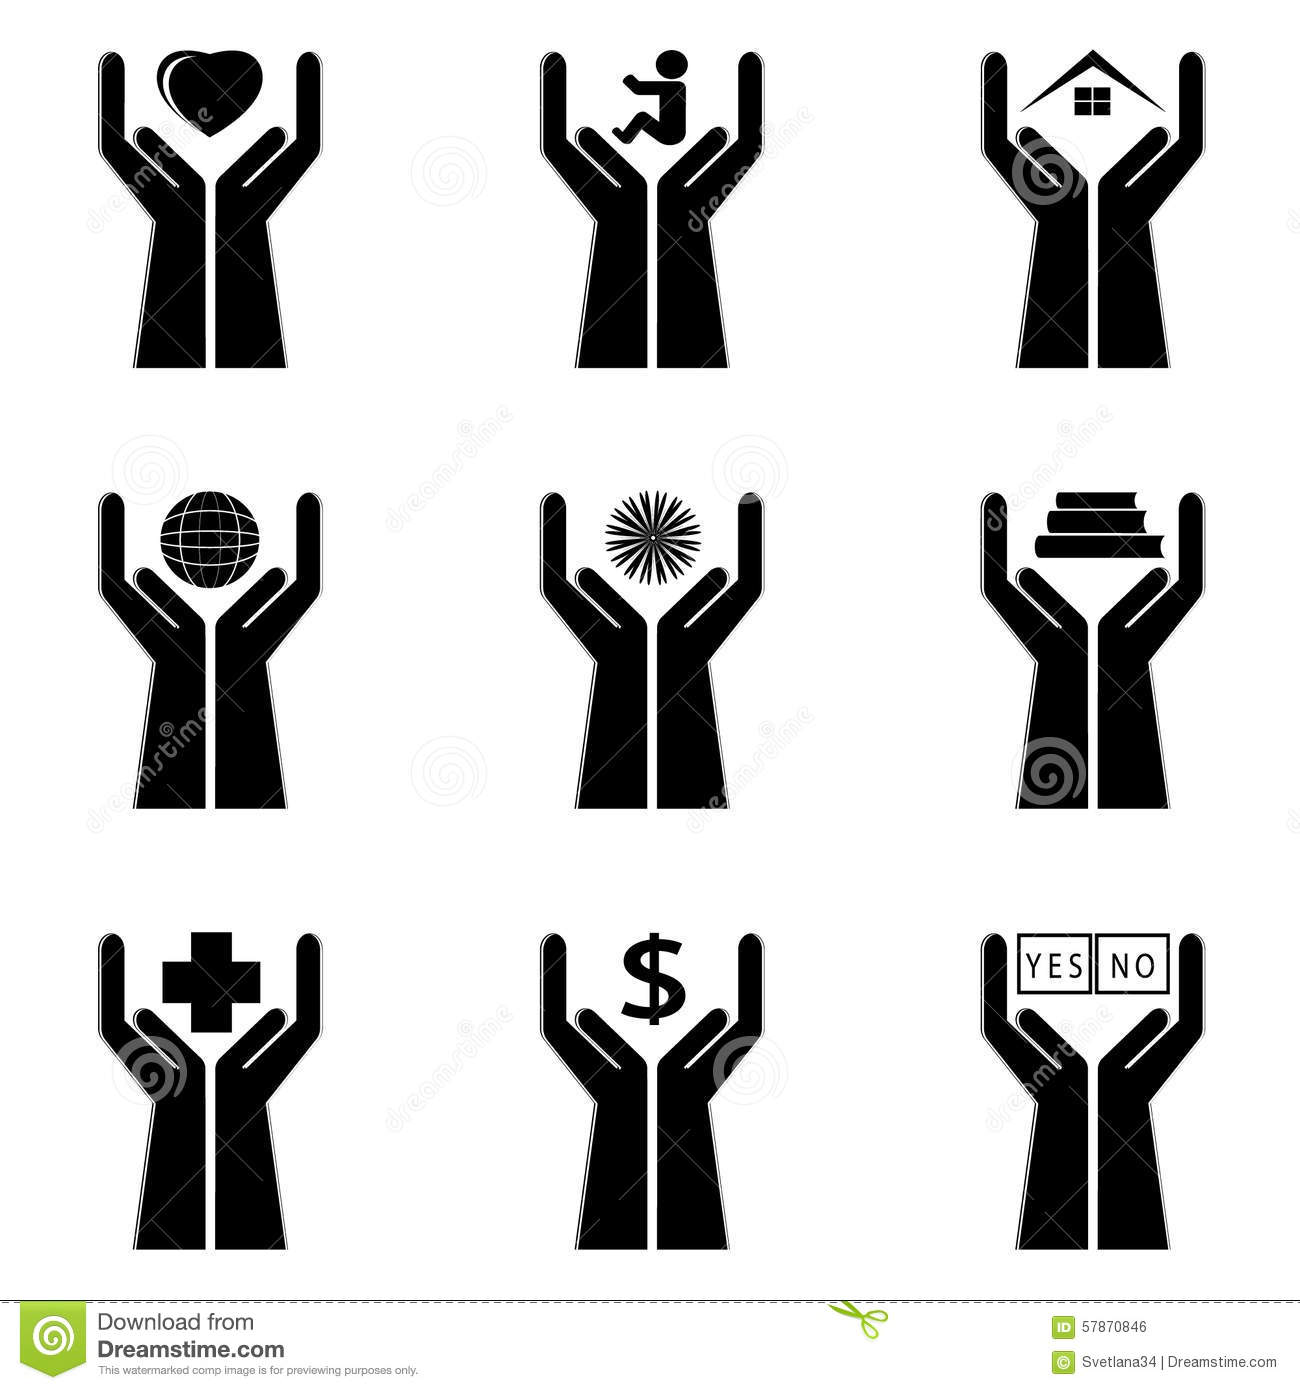 Icons Of A Hand And Symbols Stock Vector Illustration Of Finger